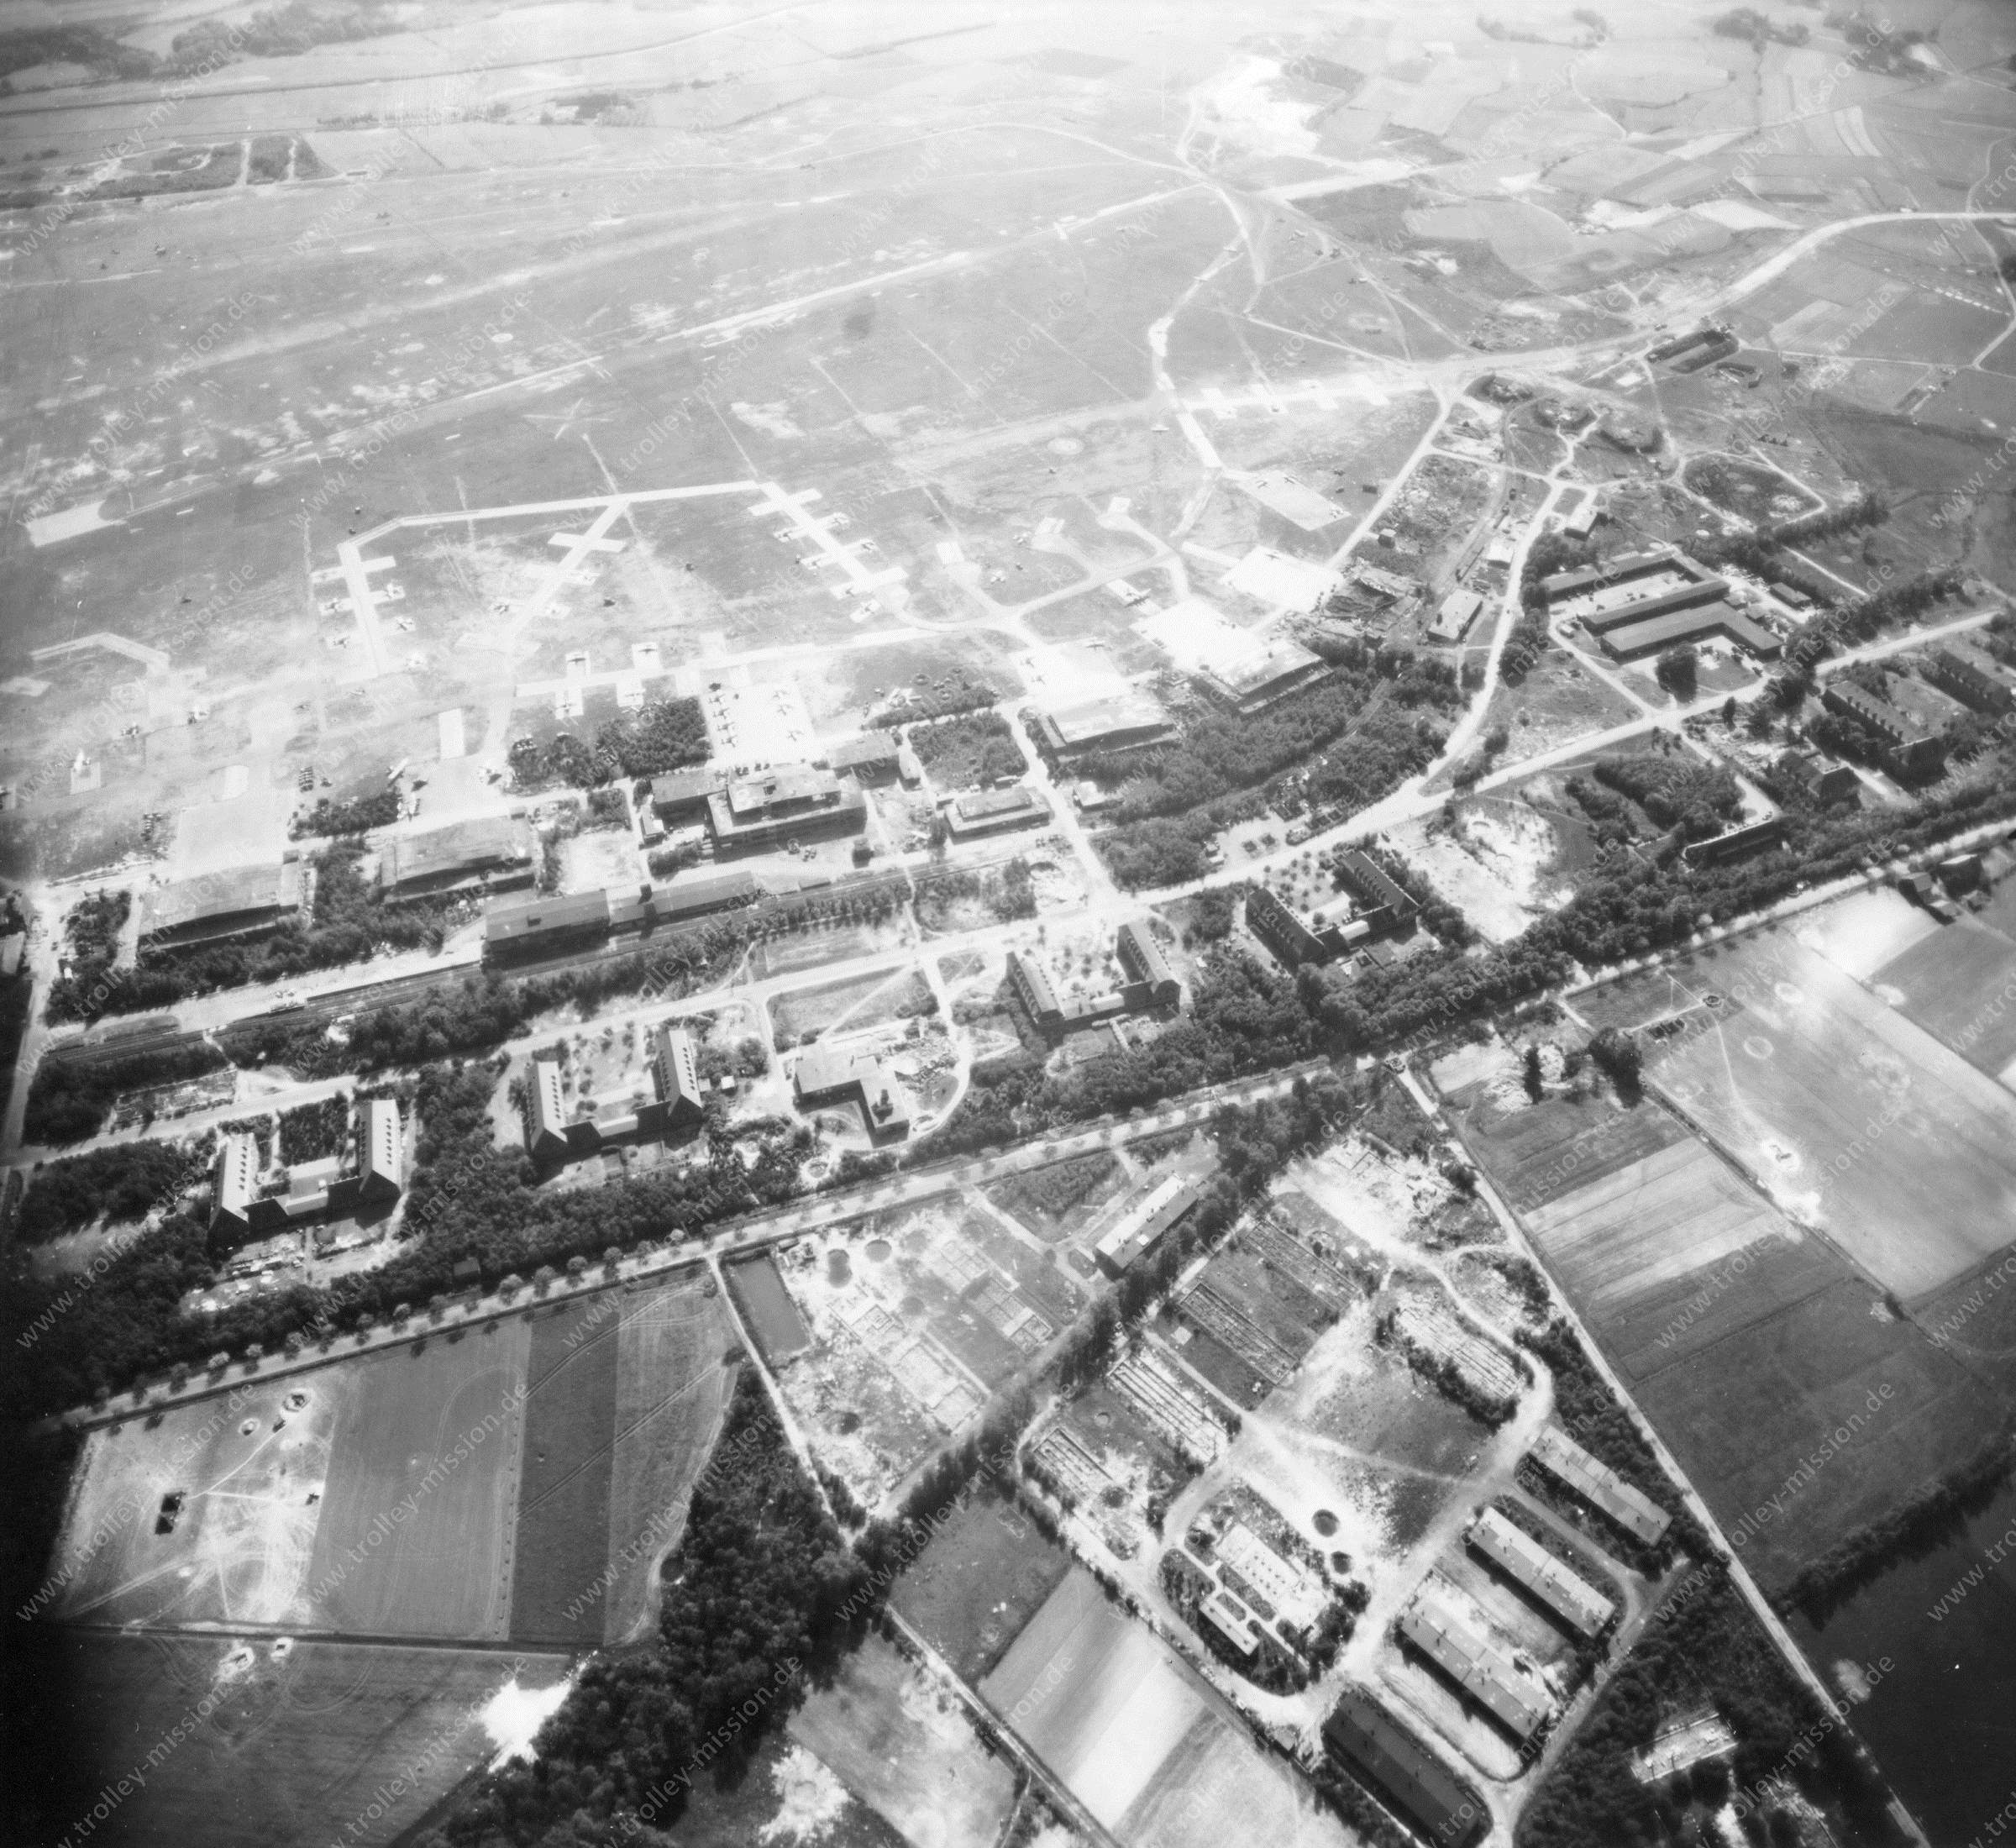 Luftwaffe Airfield Gütersloh - Air Photo World War II